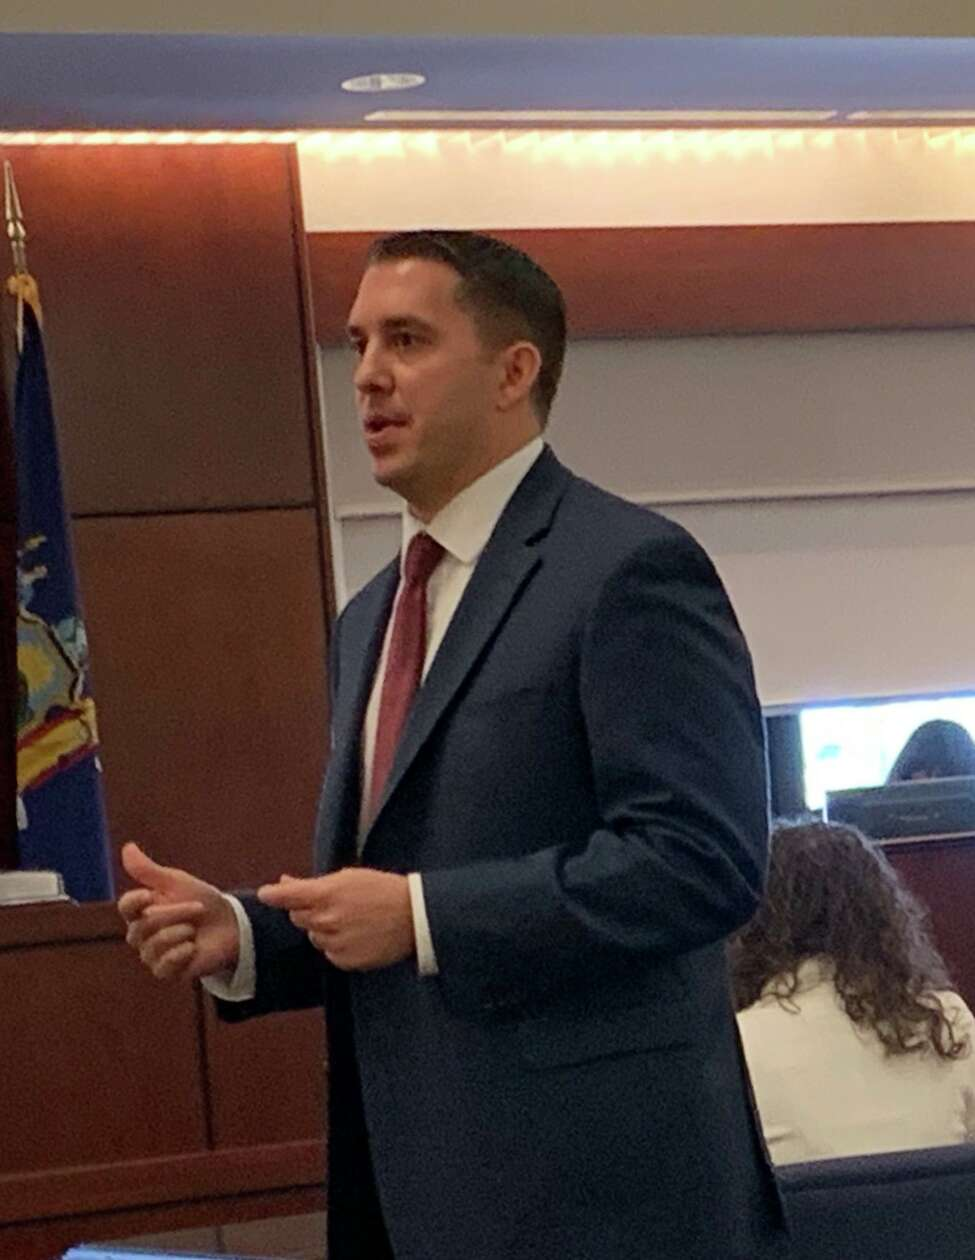 Albany County Assistant District Attorney David Szalda speaks to reporters during opening arguments Thursday at the murder trial of Thomas Slivienski, who is accused of killing 17-year-old Johni Dunia last year in Cohoes.